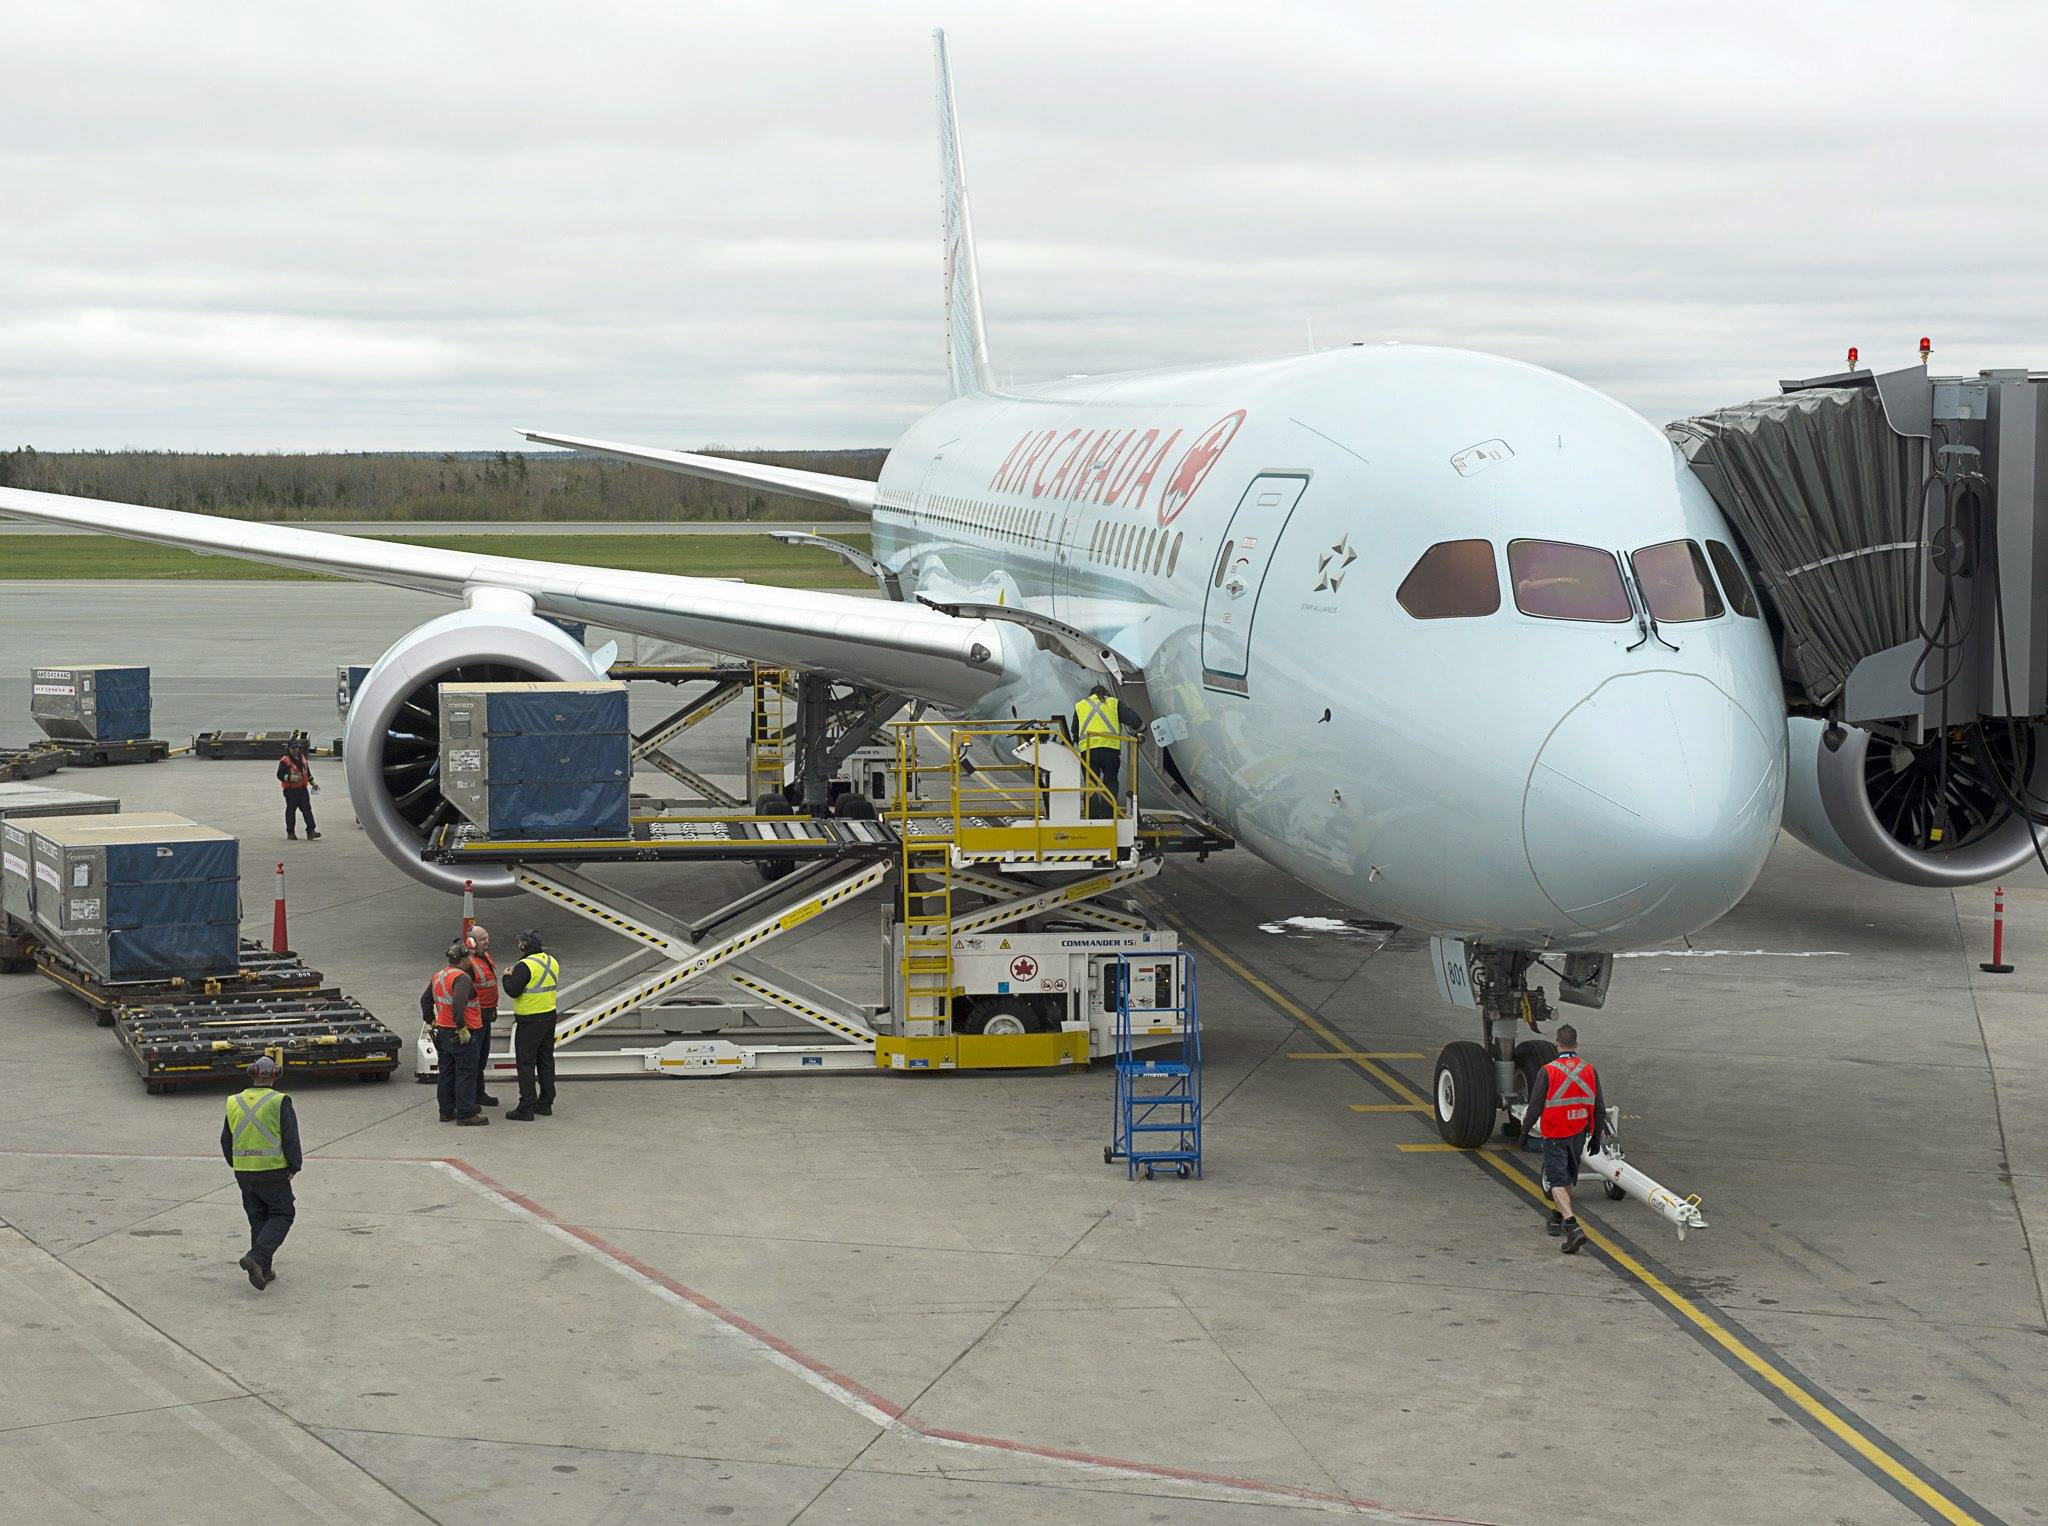 Air Canada's Boeing 787 Dreamliner jet arrives at Halifax Stanfield International Airport in Enfield, Nova Scotia. The Federal Aviation Administration on Wednesday cleared Boeing Co.'s 787 to fly far over the ocean, up to 5 1/2 hours away from the nearest emergency landing site.